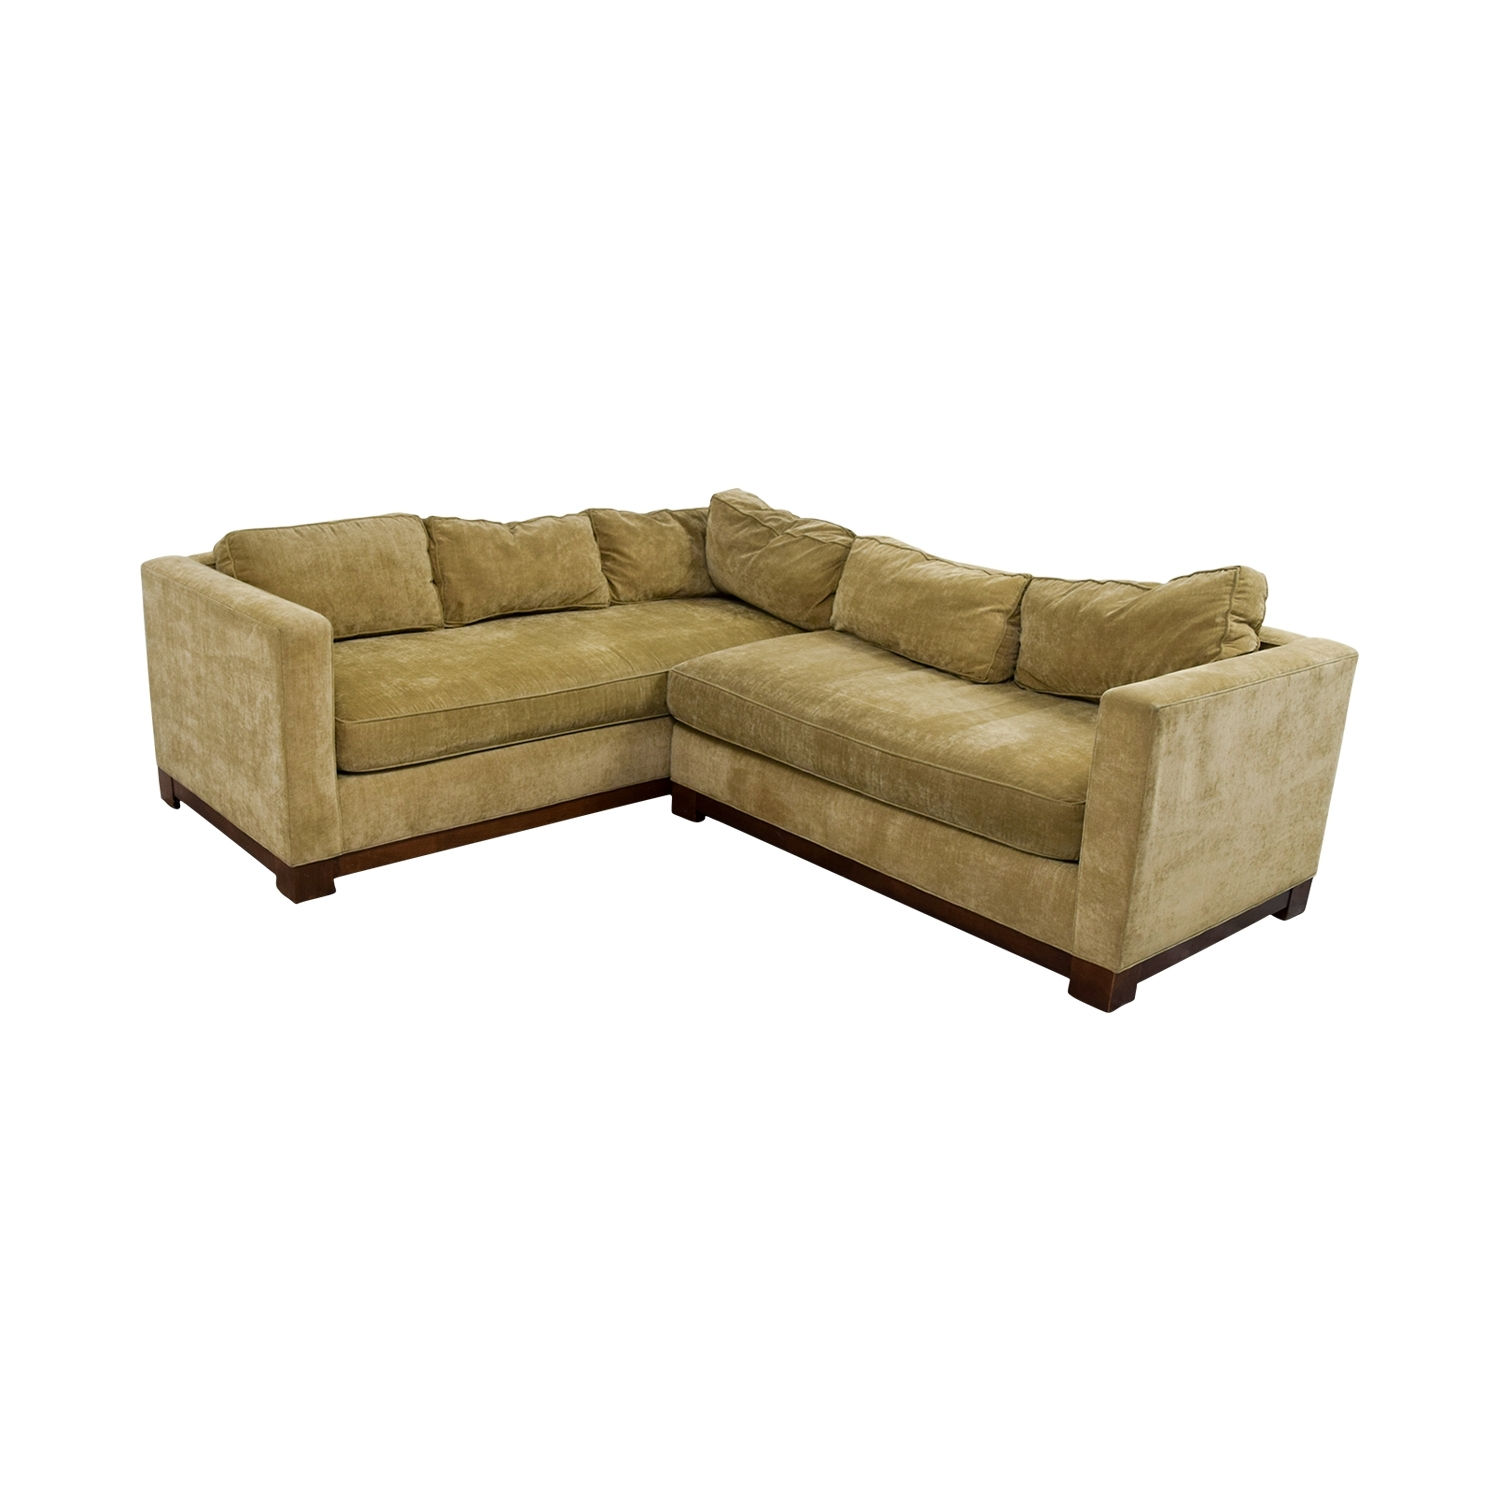 84% Off - Mitchell Gold + Bob Williams Mitchell Gold + Bob Williams inside Gold Sectional Sofas (Image 2 of 10)